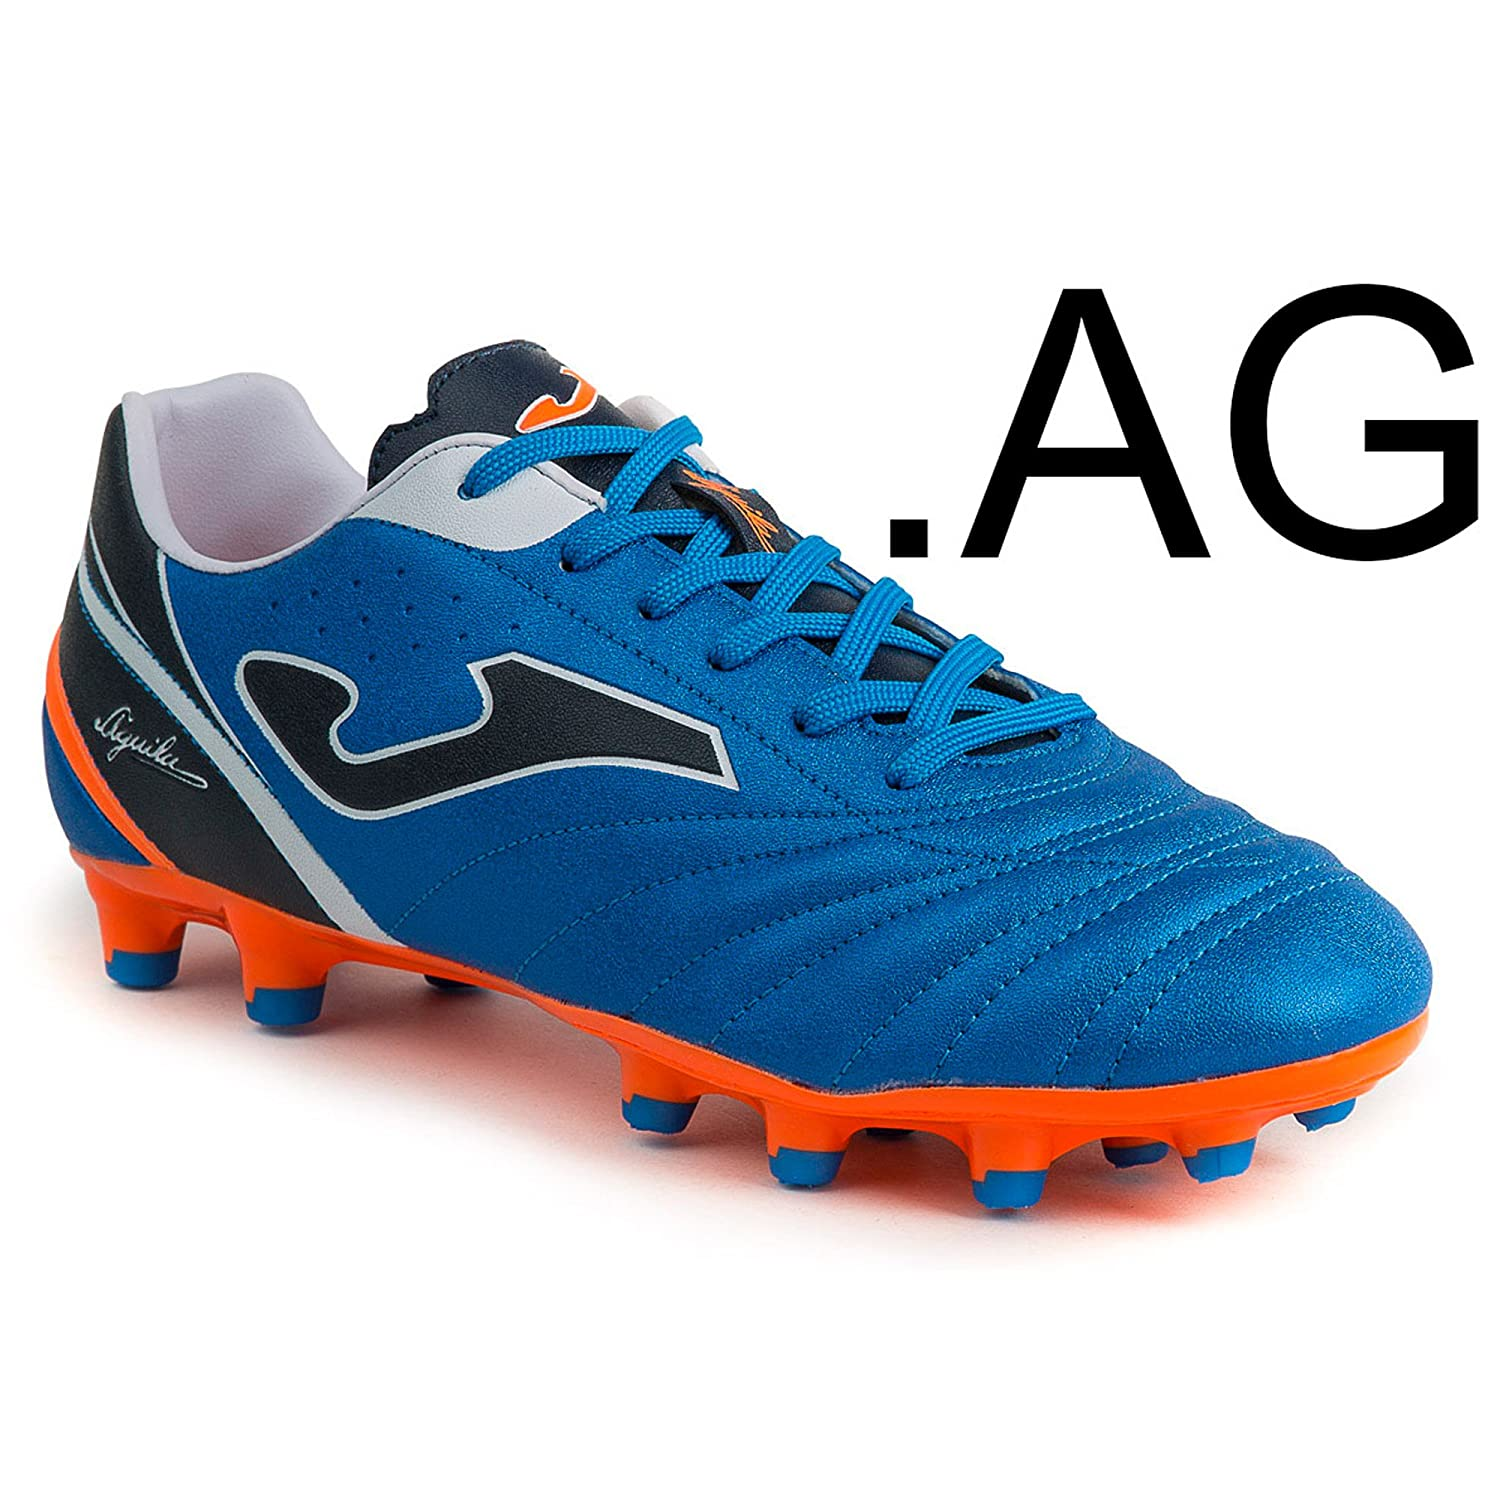 Joma Águila 604 Royal Turf